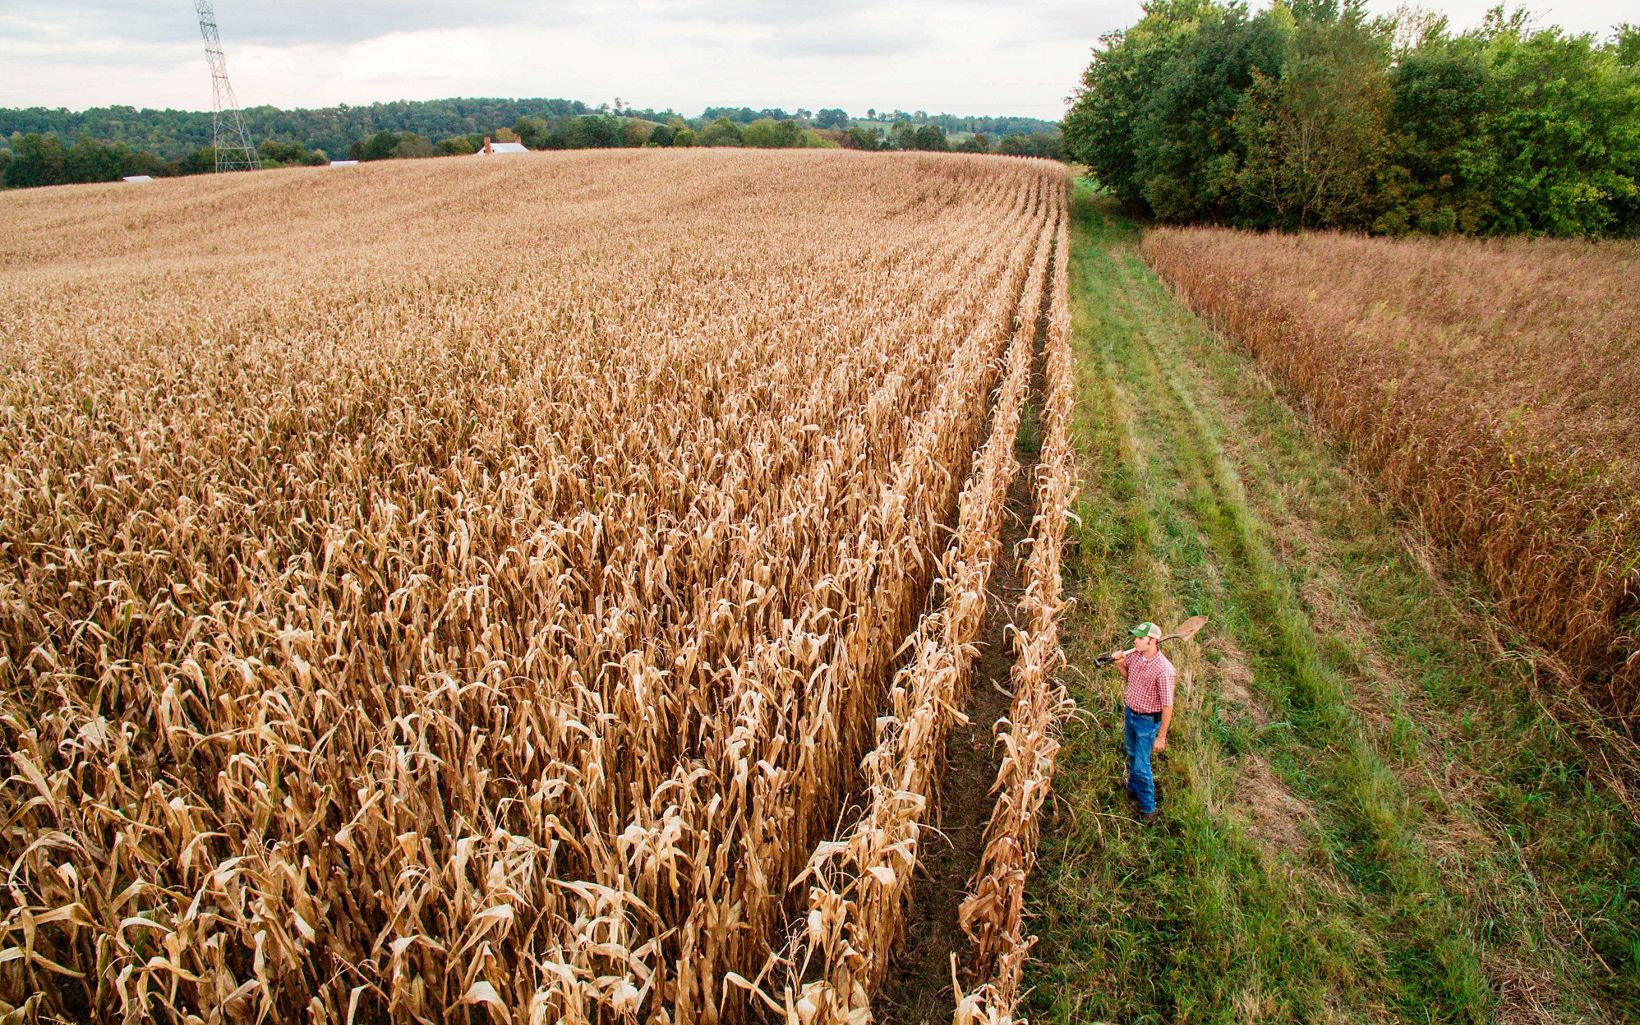 View from above of a corn field with a farmer standing next to it.